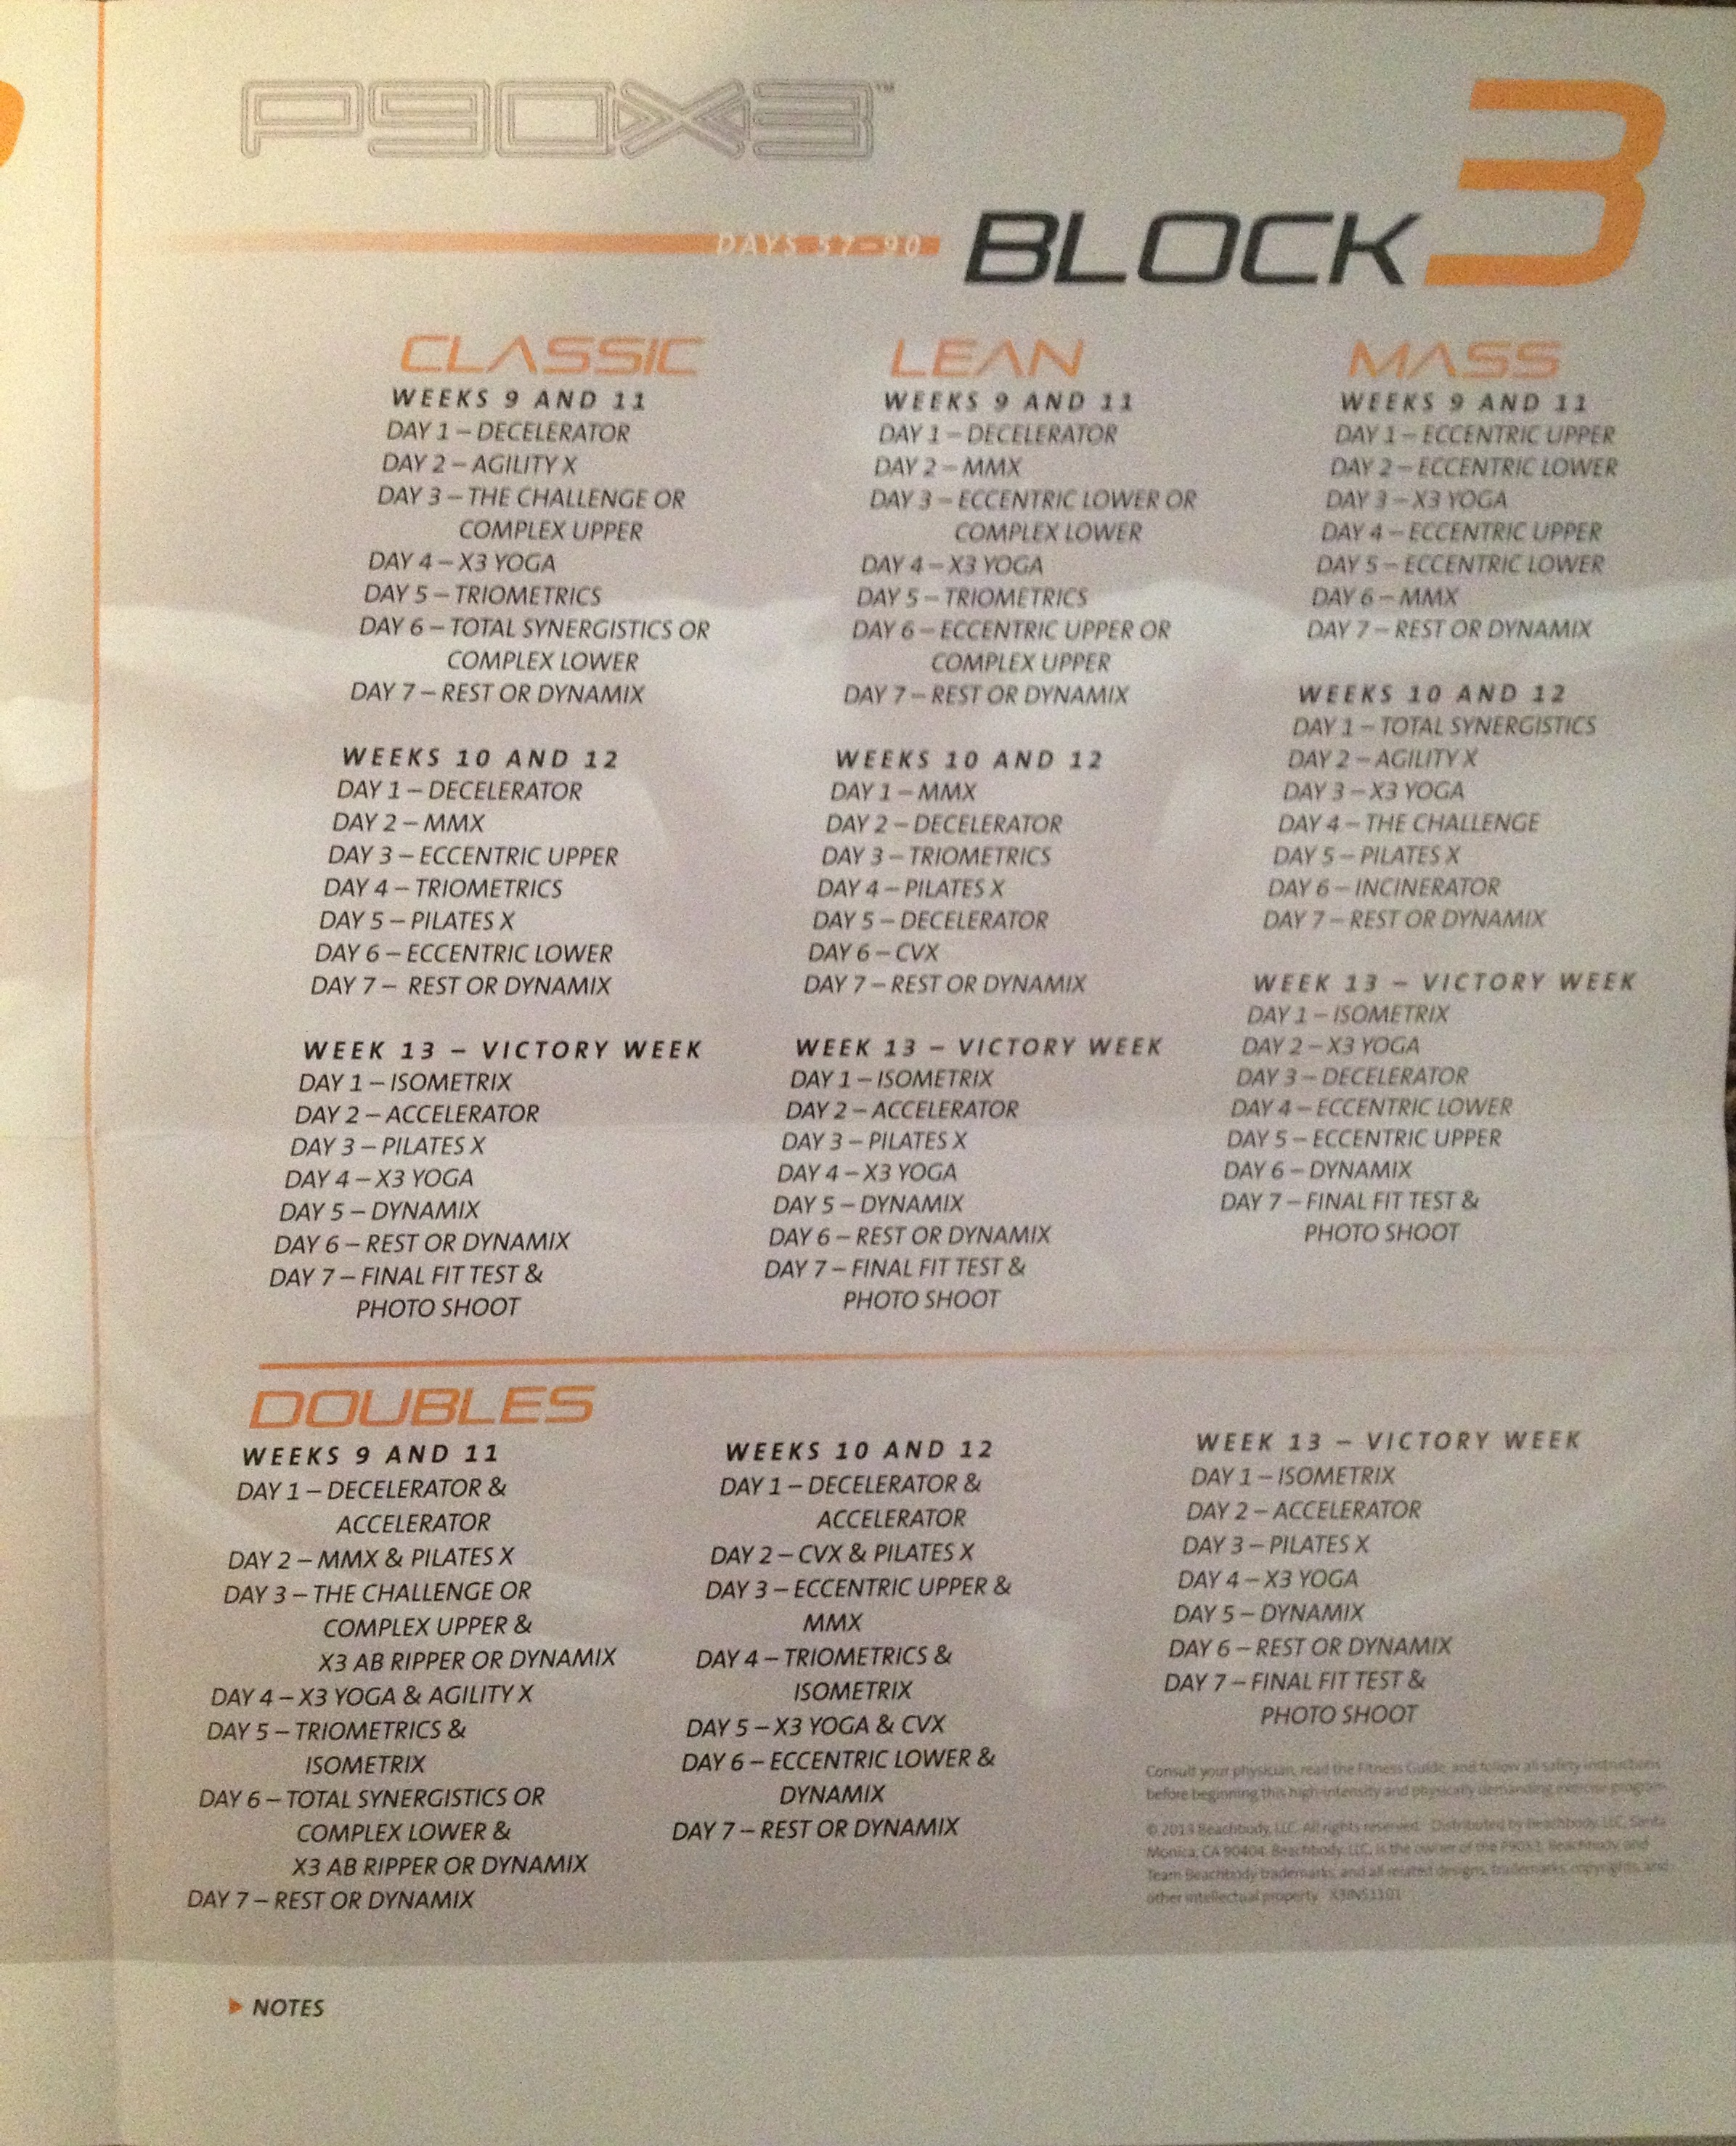 P90X3 Calendar- All Details You Need About P90X3